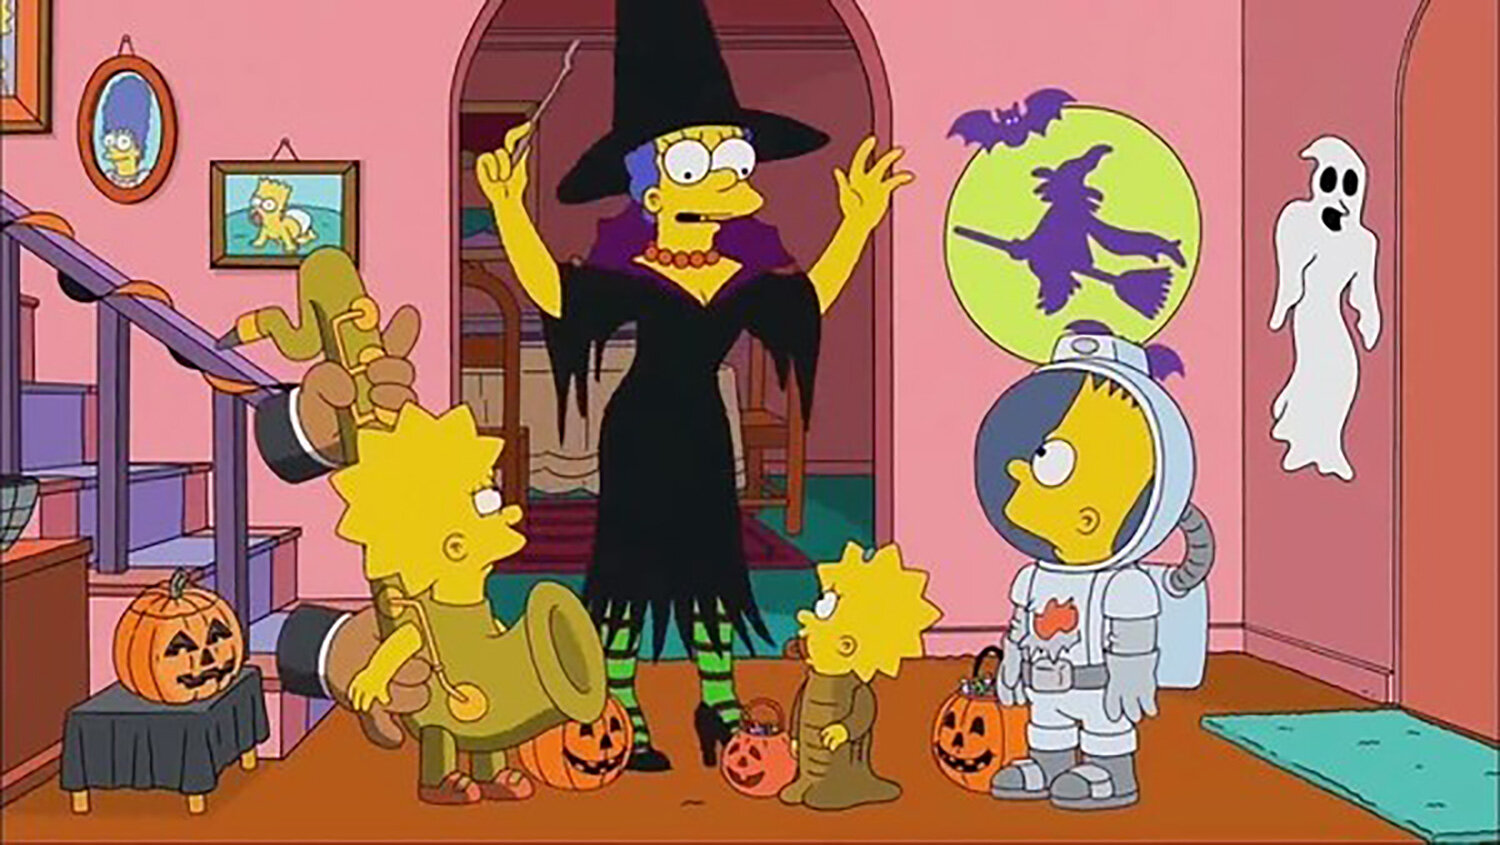 WE HAVE TO KILL THE BOY! No...wait....You have to make it to WooHoo! Classic Simpsons Trivia Hallowe'en Edition at our NEW HOME at The Hideout!  We've moved to the 2nd Wednesdays of the month(don't worry we asked the Reverend)! ***Doors at 6 pm Trivia Starts at 7:30pm***  We will be having our Simpsony Hallowe'en costume contest! The 3 best costumes will win amazing prize pack from our friends at the Silver Snail, Planet X and Collective!  WooHoo! Classic Simpsons Trivia is 3 cromulent rounds of trivia and 3 classic episodes from Seasons 1-11  ***$5 cover per team*** Rich creamery prizes to be won! Follow us at @woohootriviaTO on Twitter to win vintage Simpsons action figures from the Silver Snail! Delicious Lard Lad donuts for the top 3 teams!  First episode goes on at 7:30pm sharp at The Hideout!